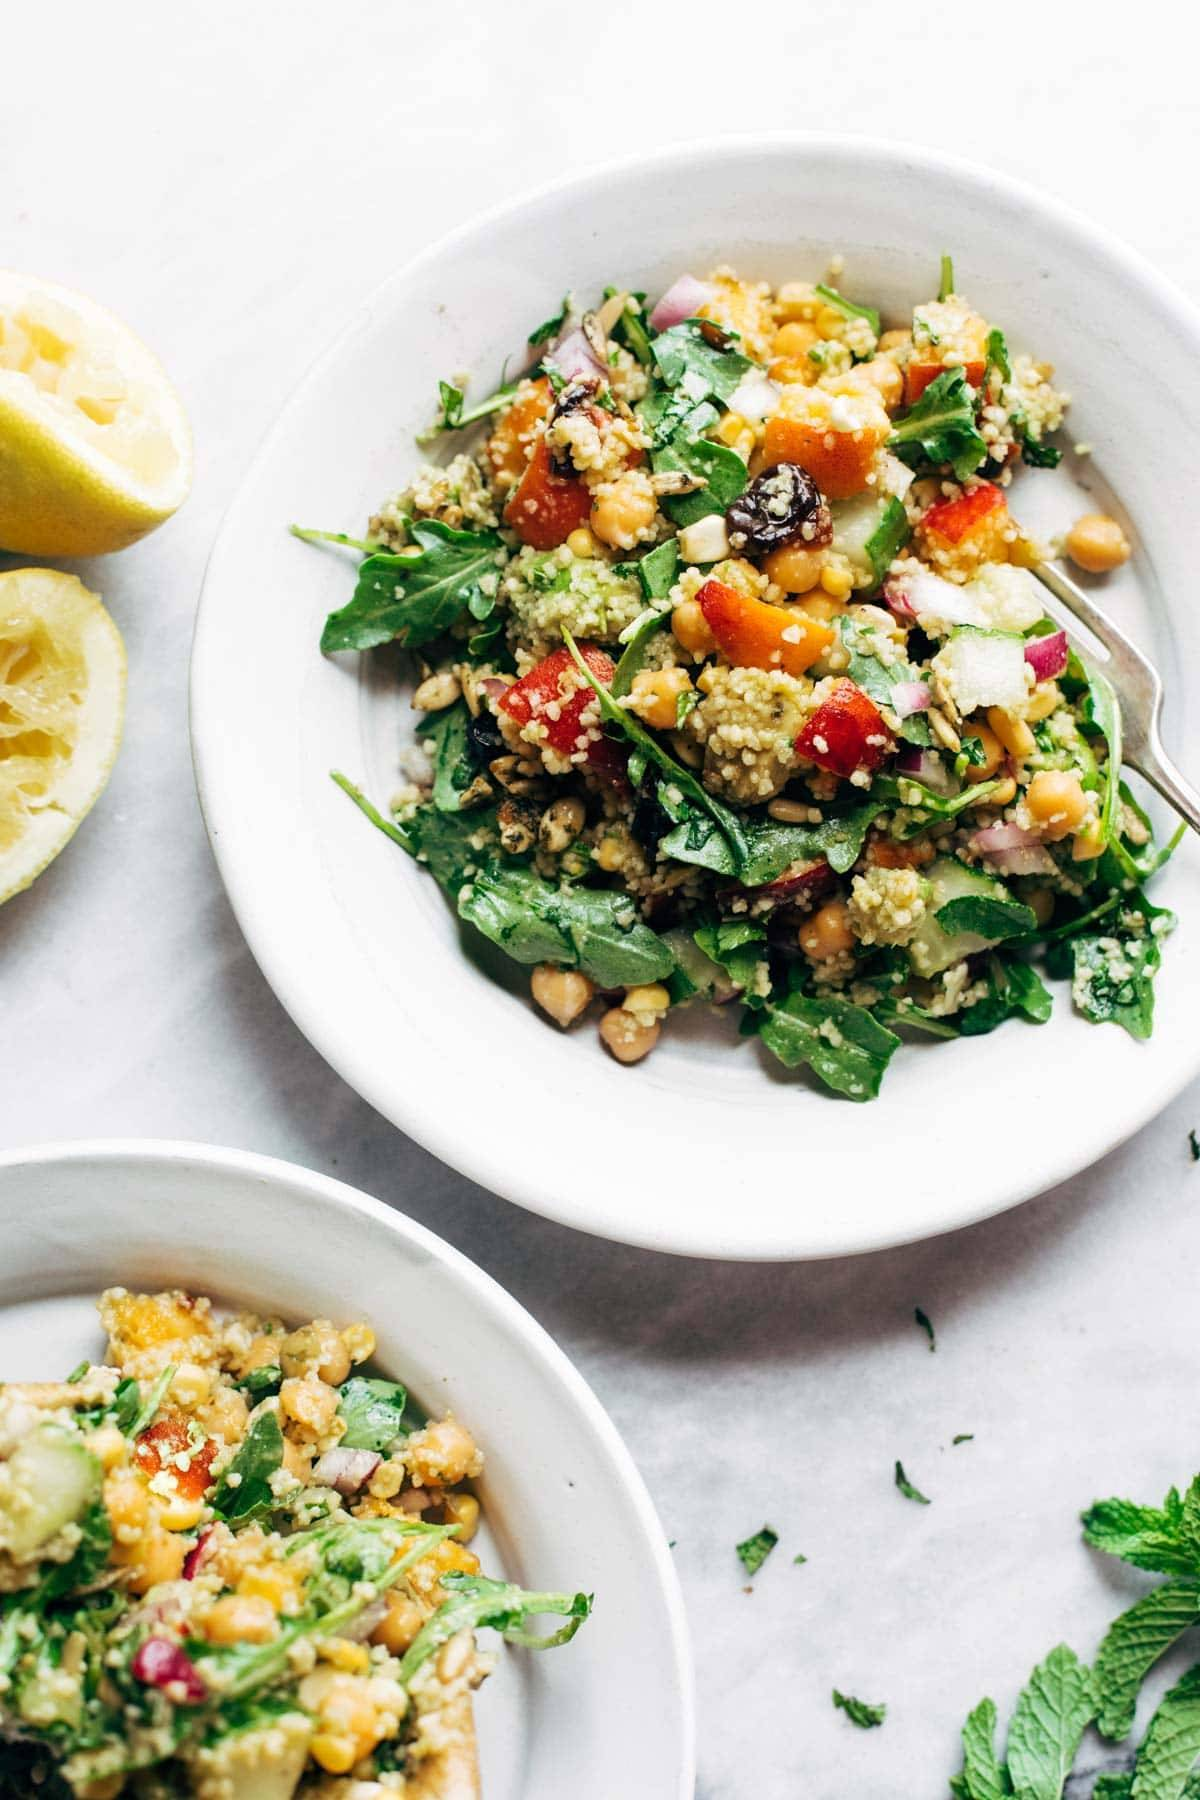 Couscous summer salad on a plate.